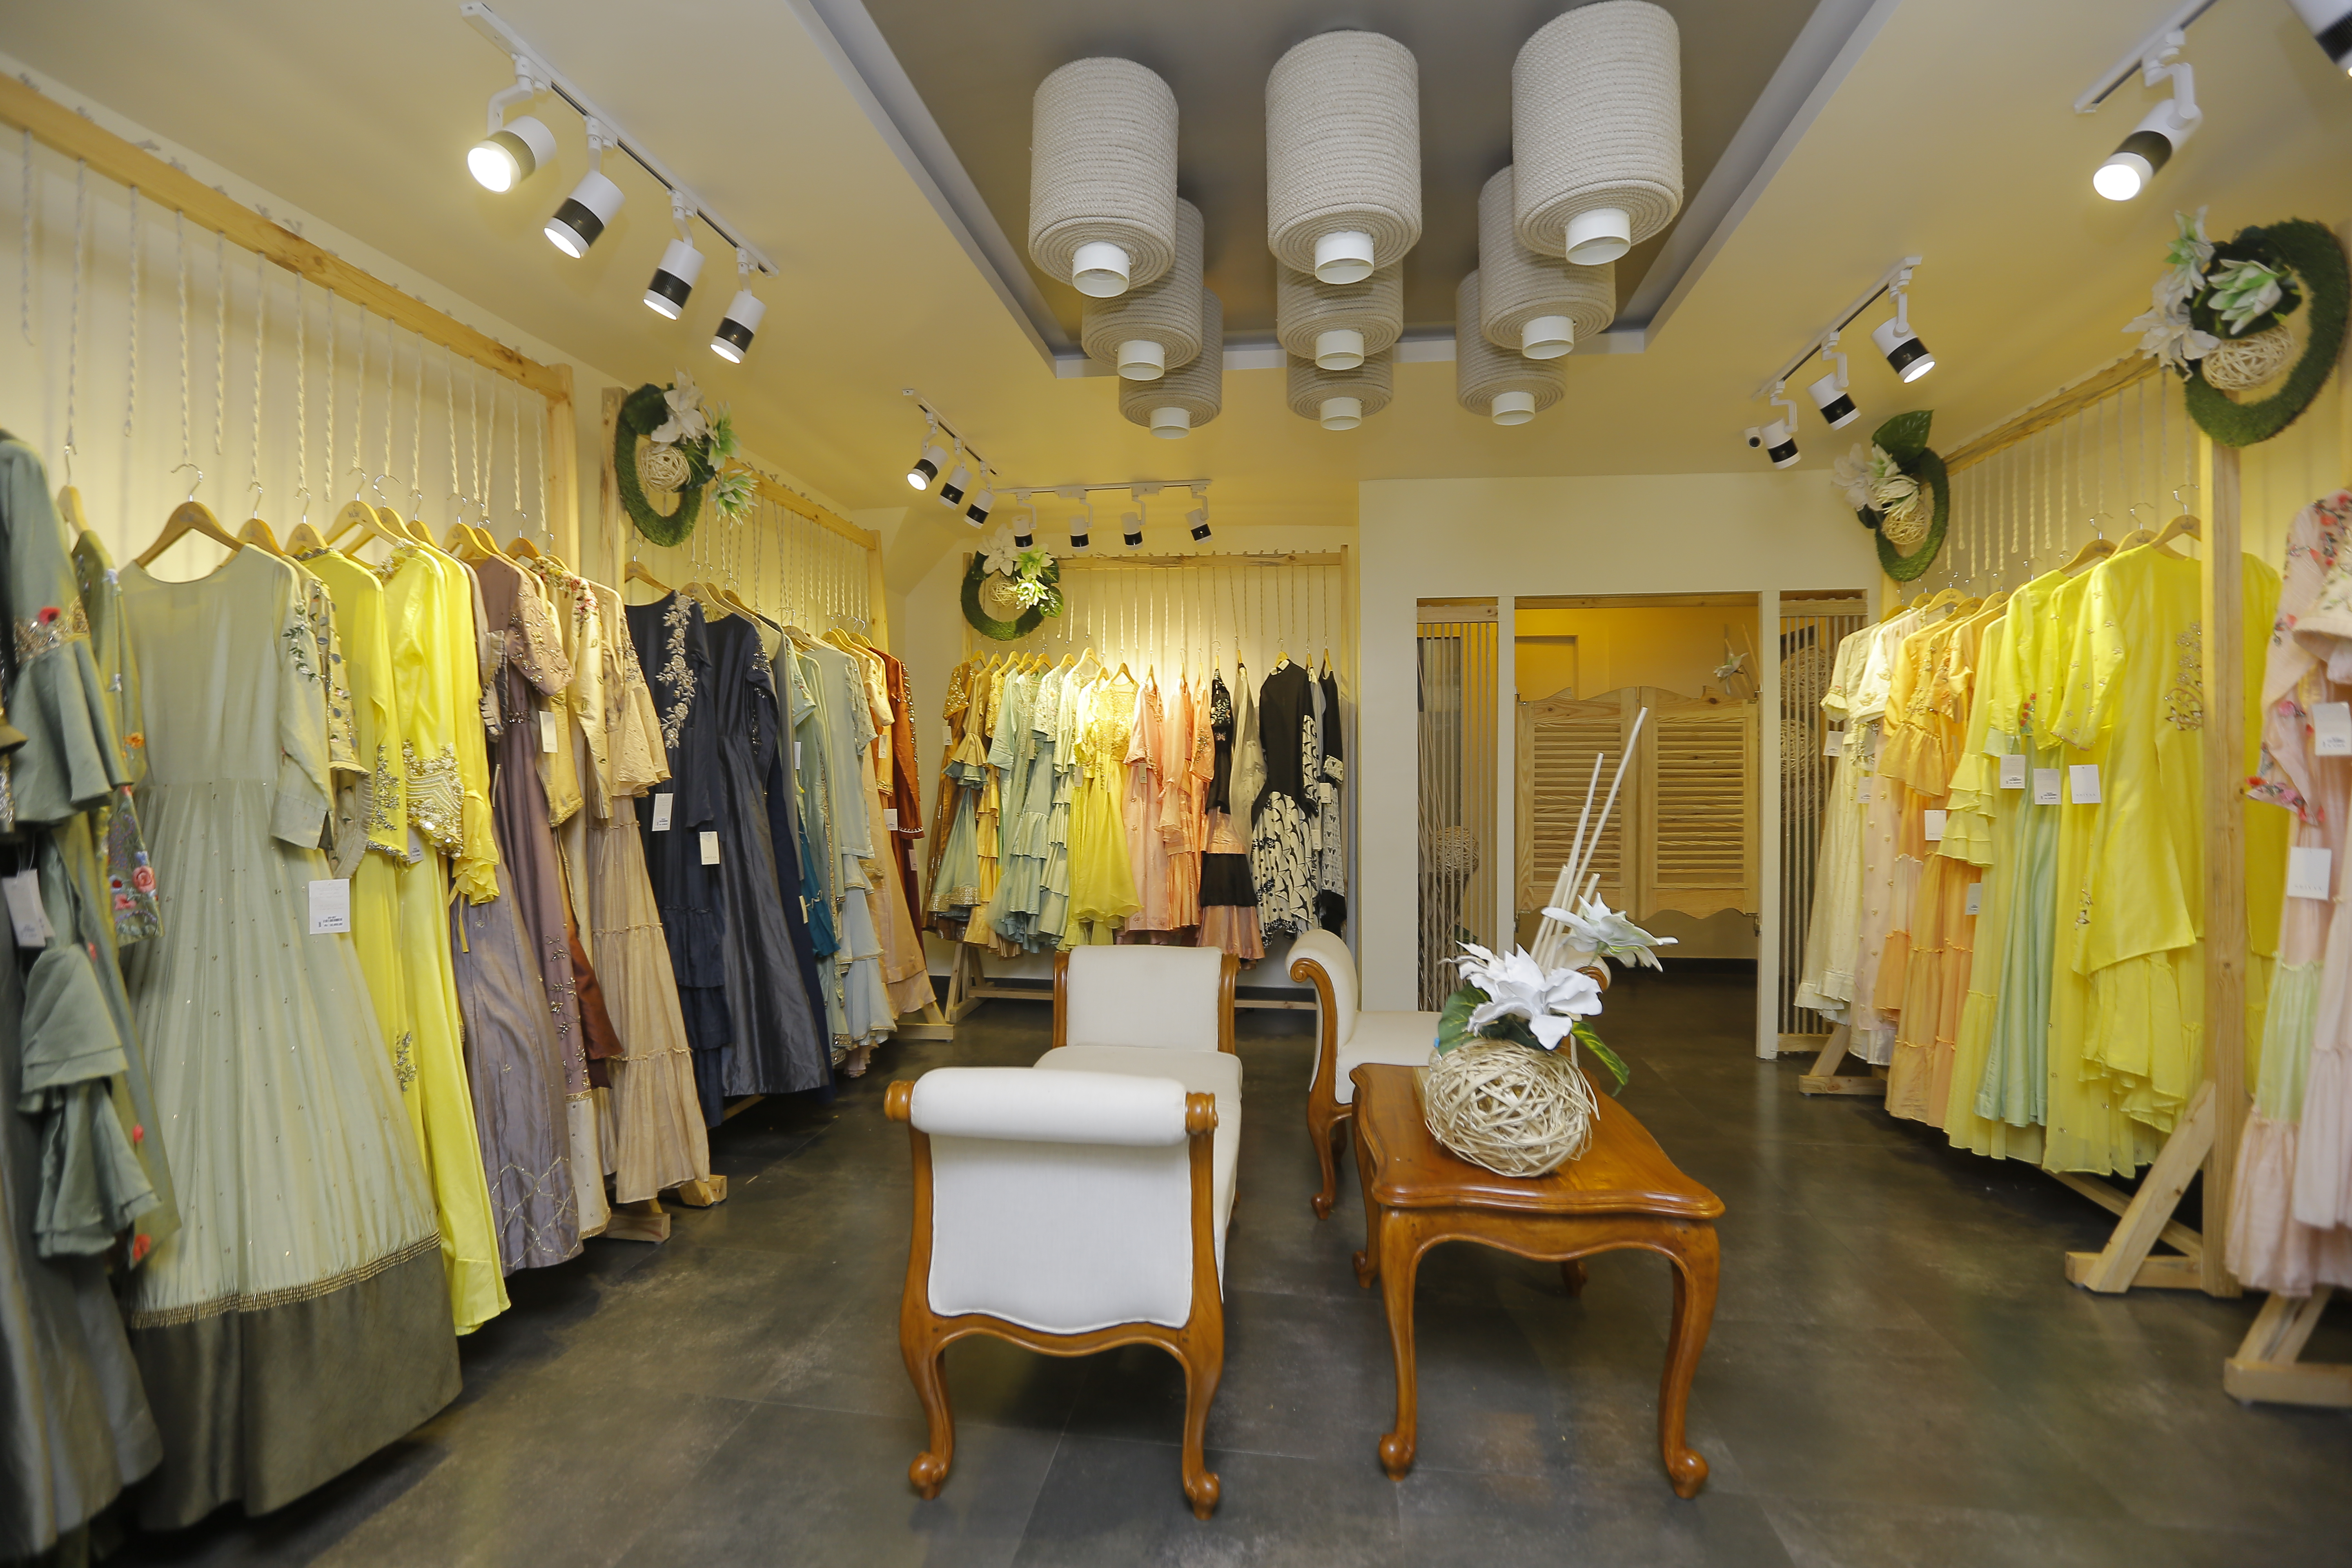 A glimpse of the store